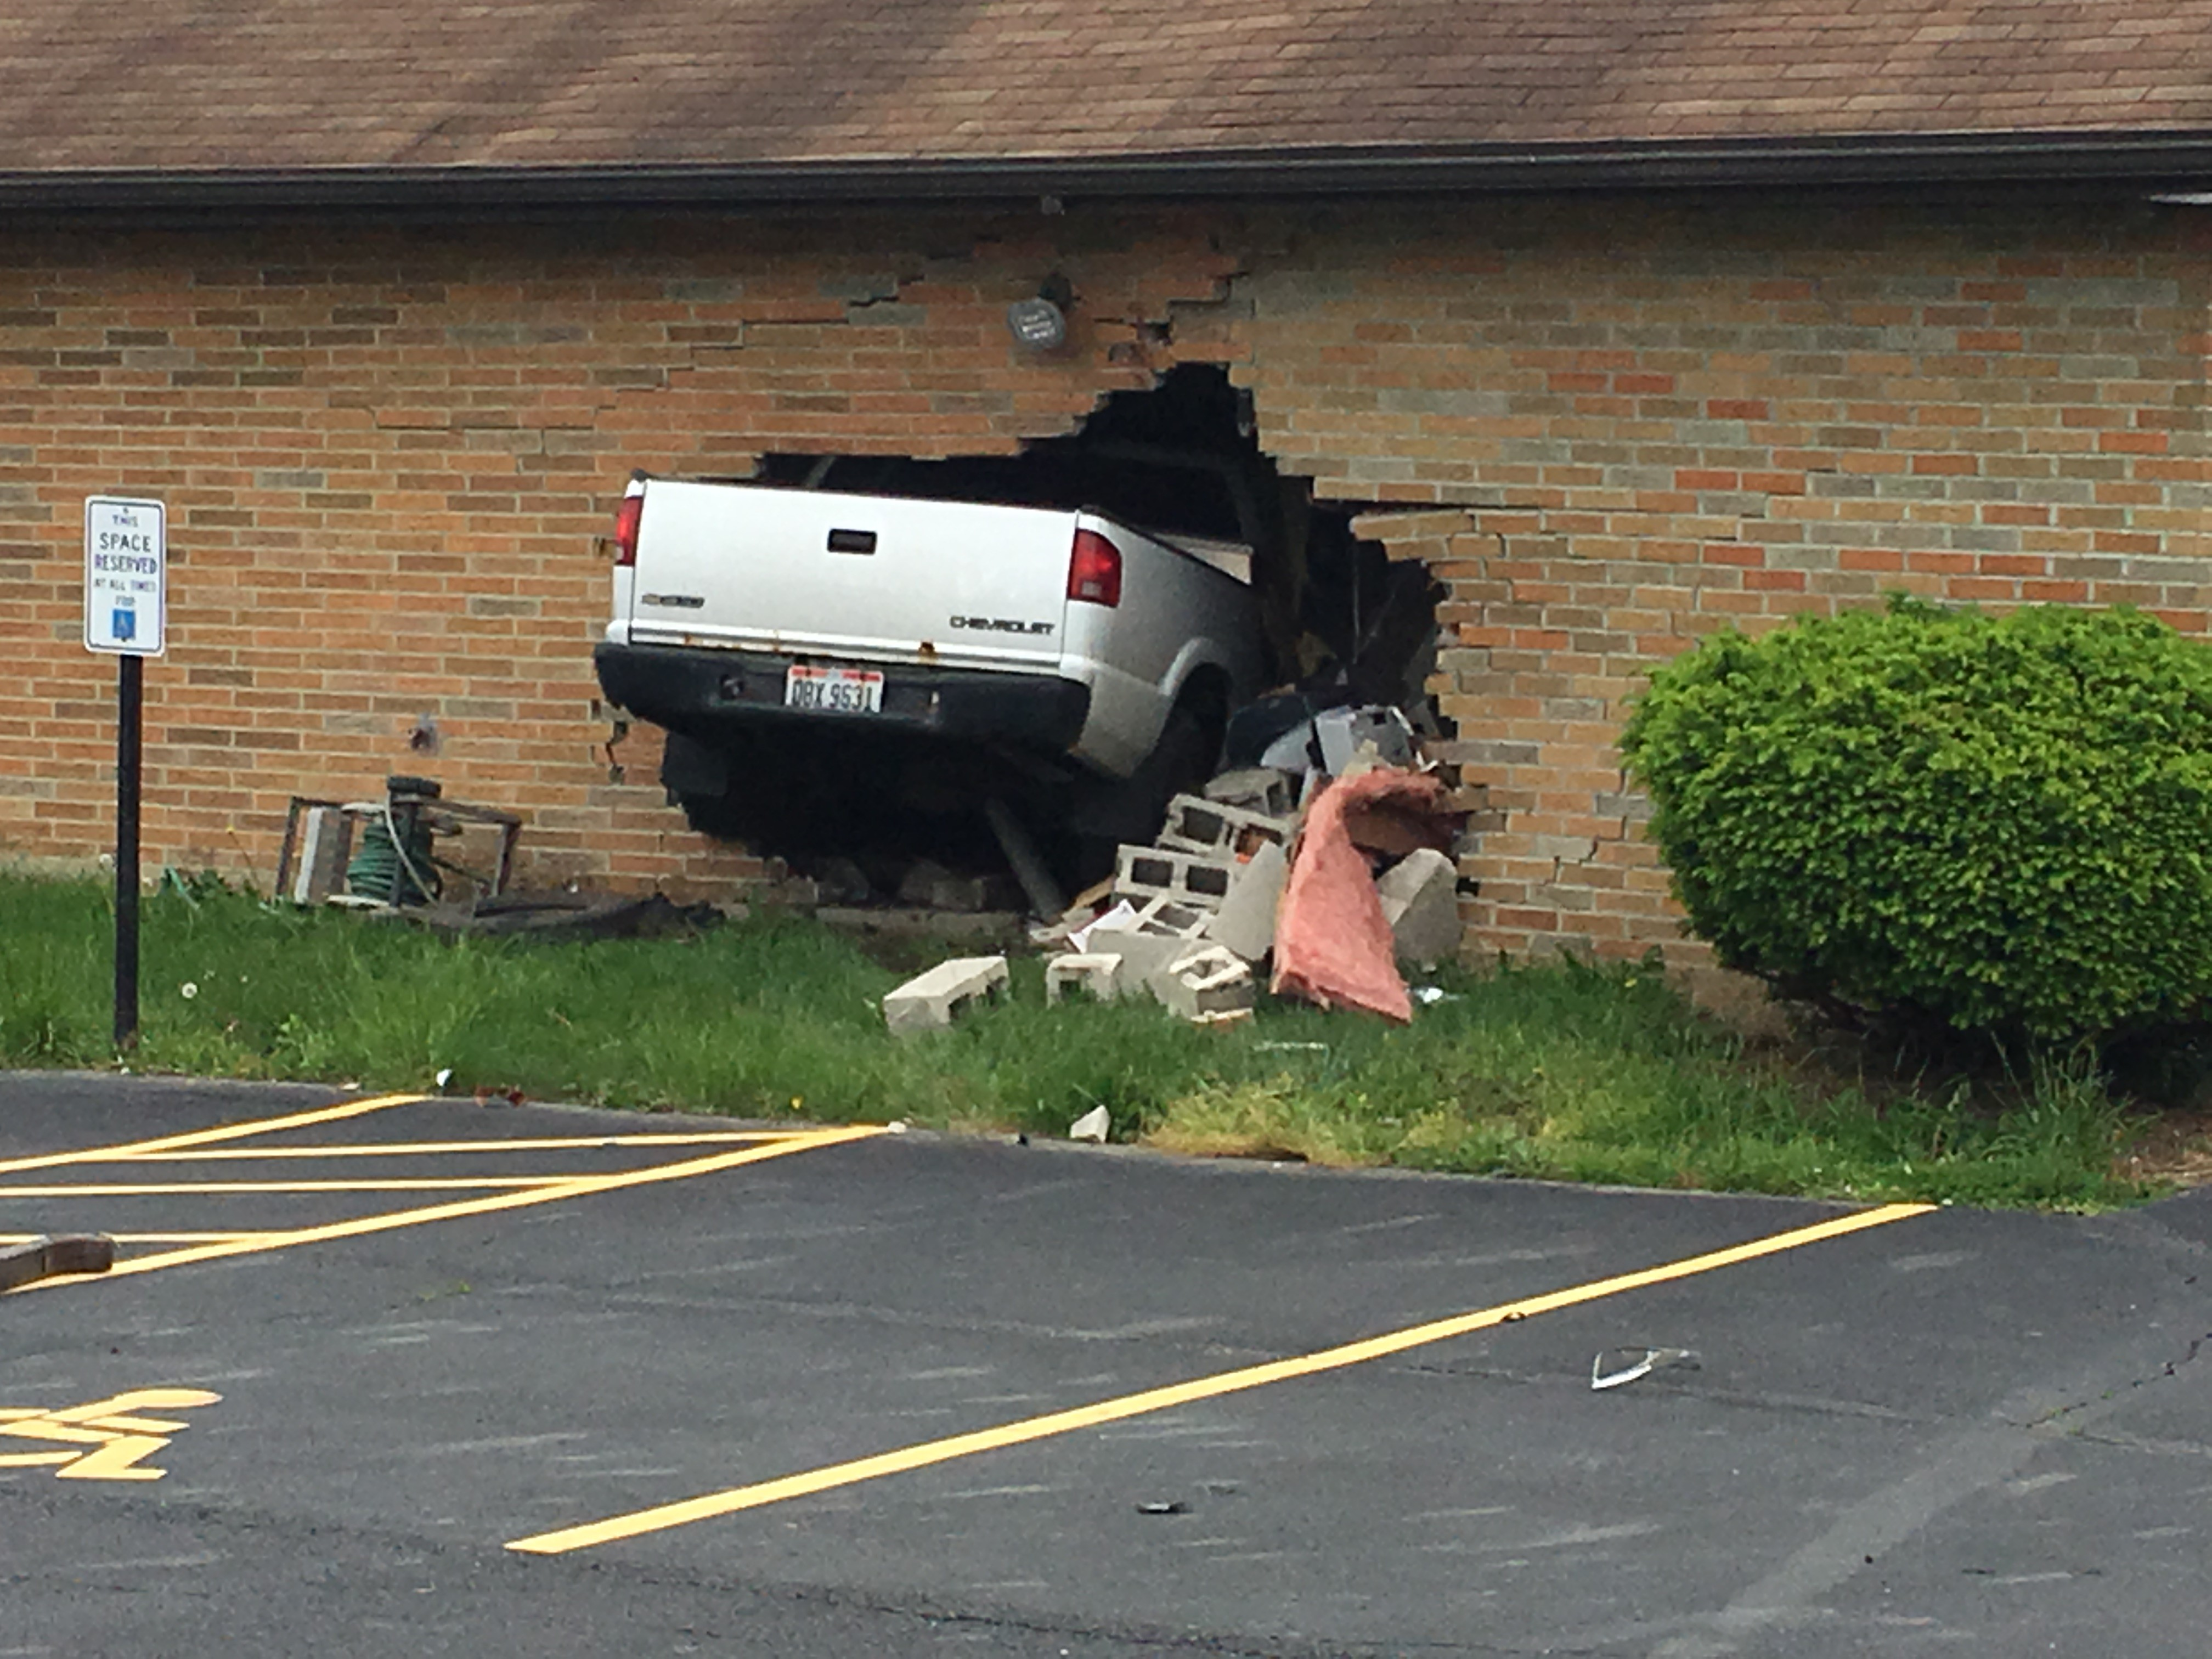 Woman loses control of truck, drives through fences before smashing into Riverside church (WKEF/WRGT)